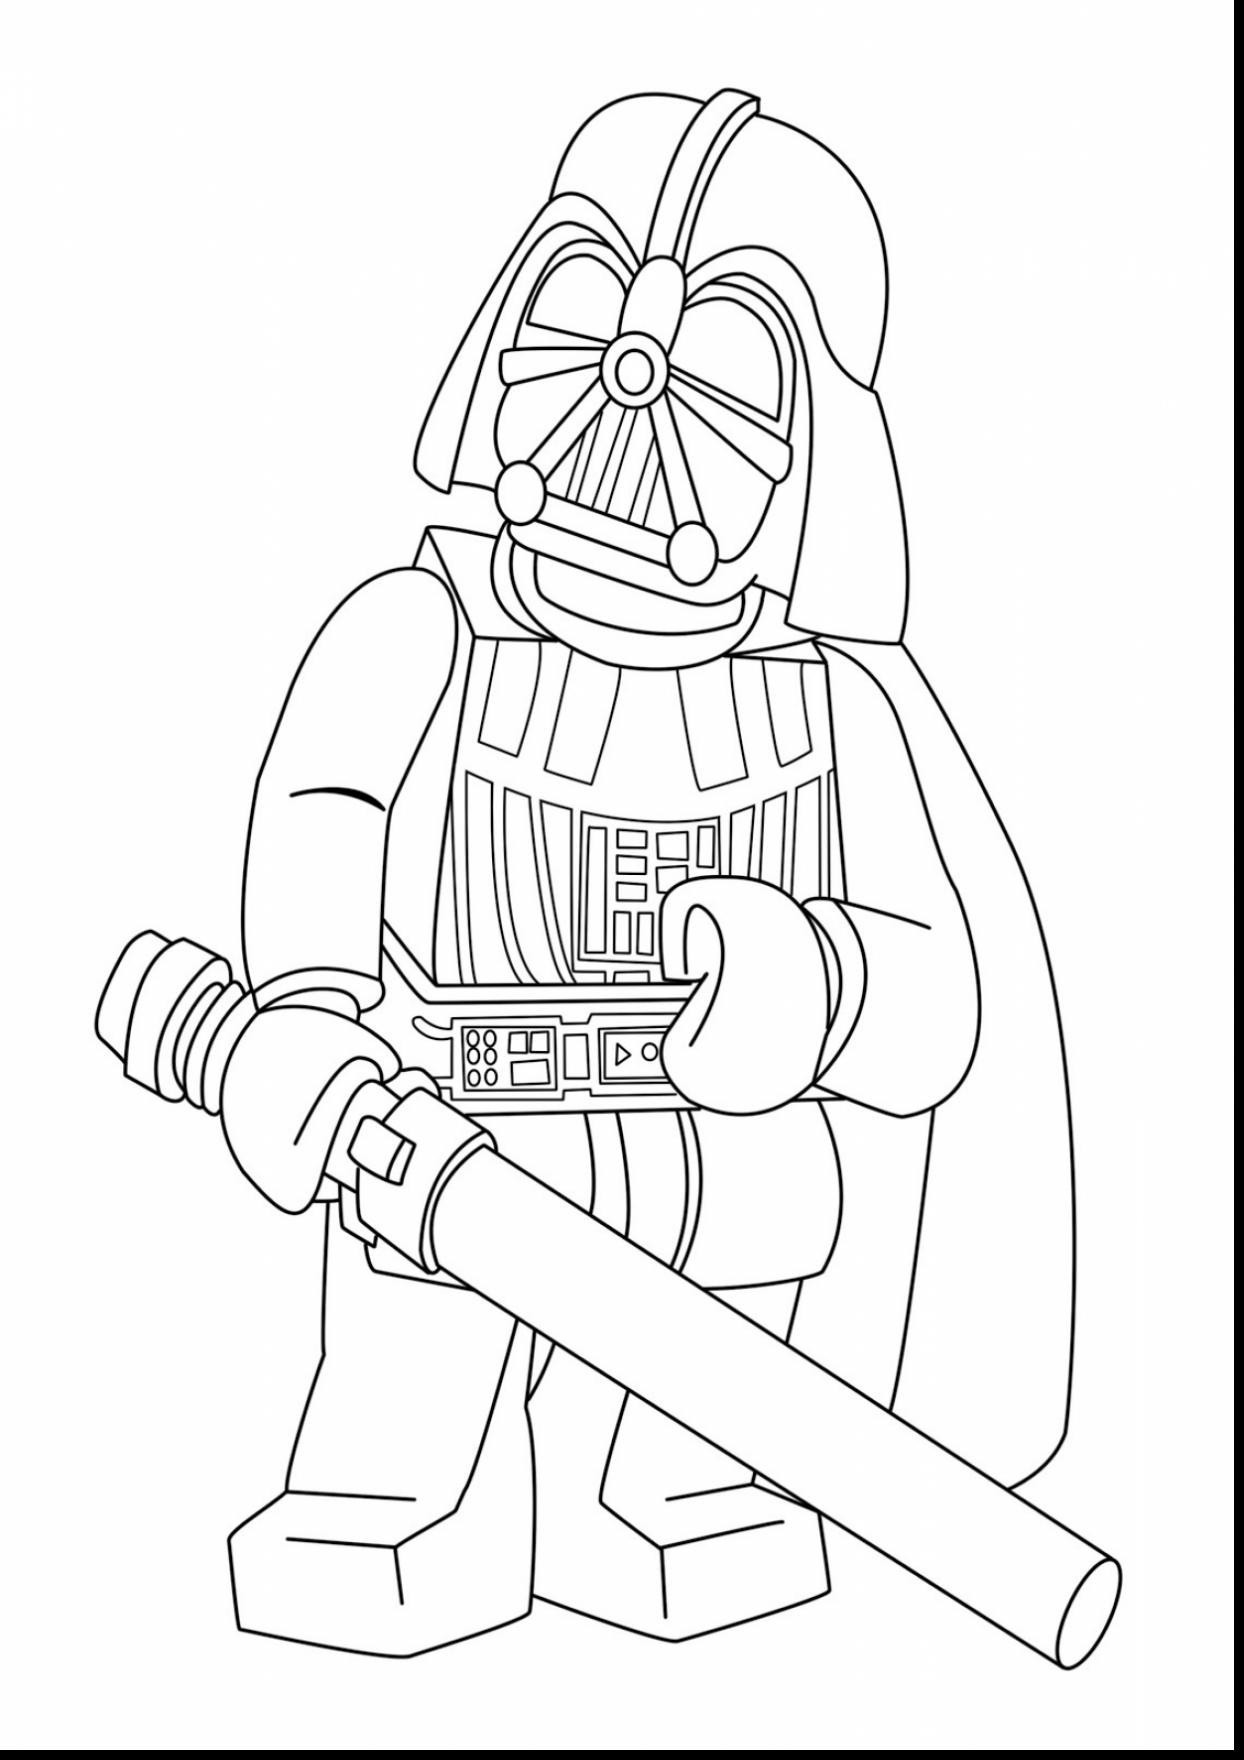 Darth Vader Ausmalbilder Inspirierend Awesome Darth Vader Coloring Pages Coloring Elegant Ausmalbilder Stock